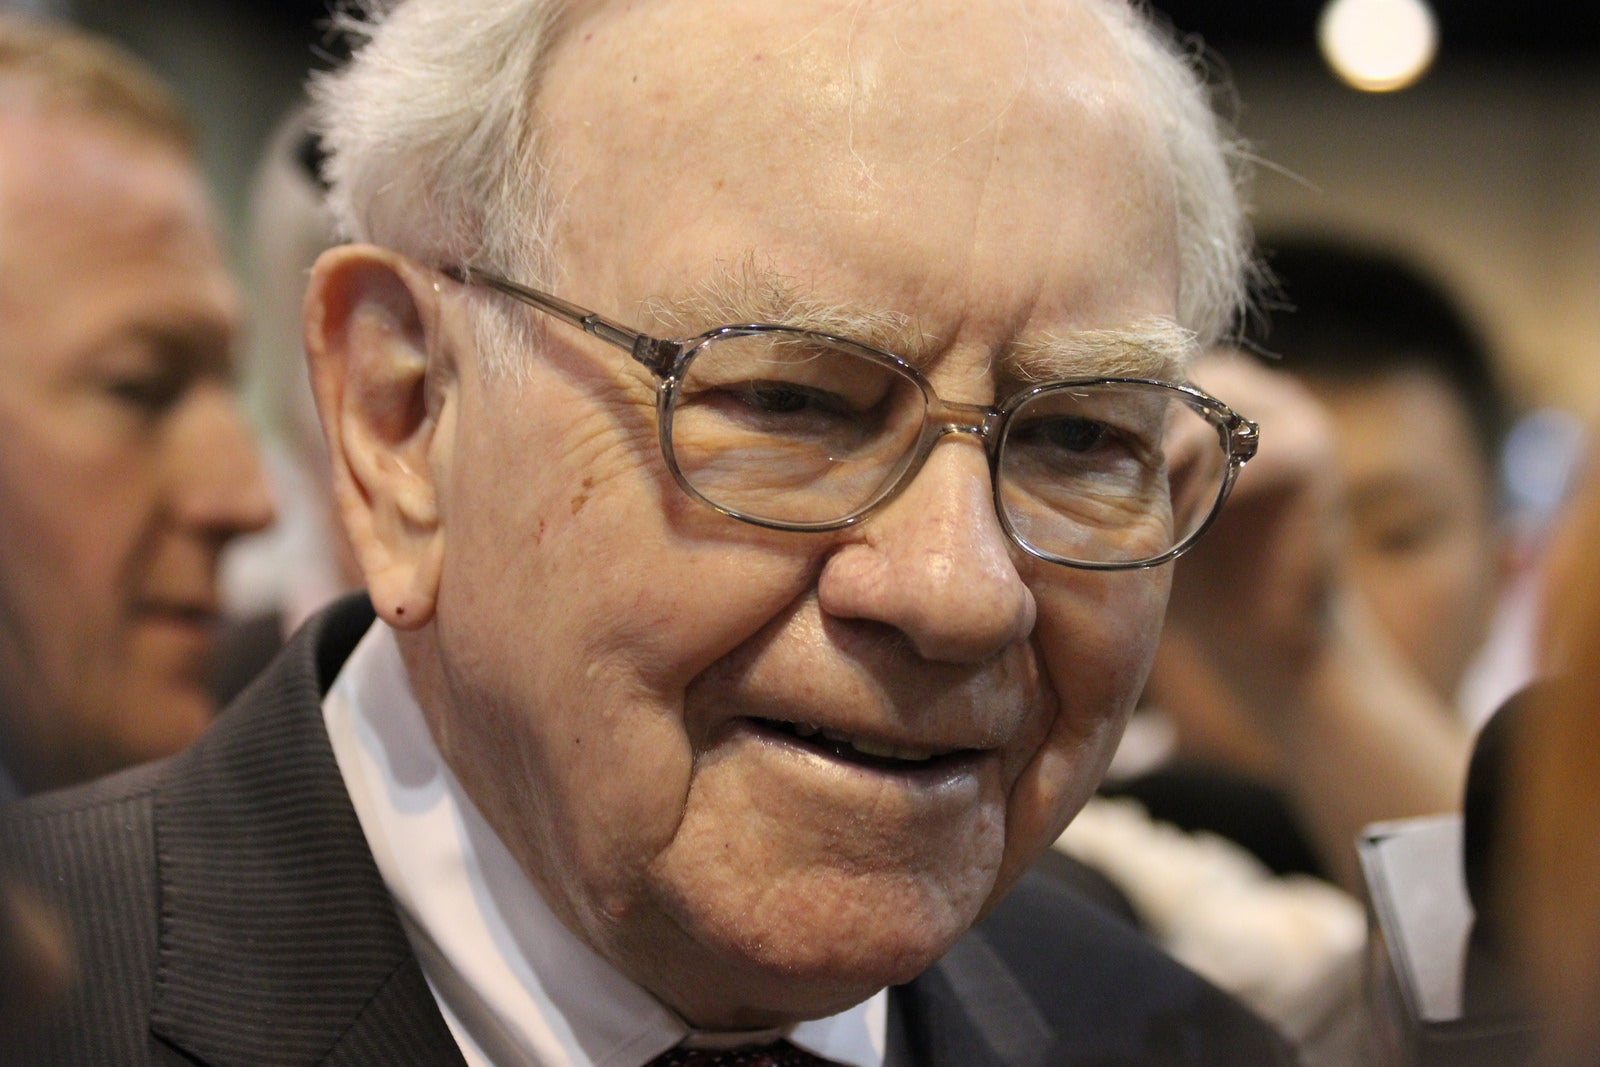 Warren Buffett's Berkshire Hathaway Sells Off Its Restaurant Brands Stake